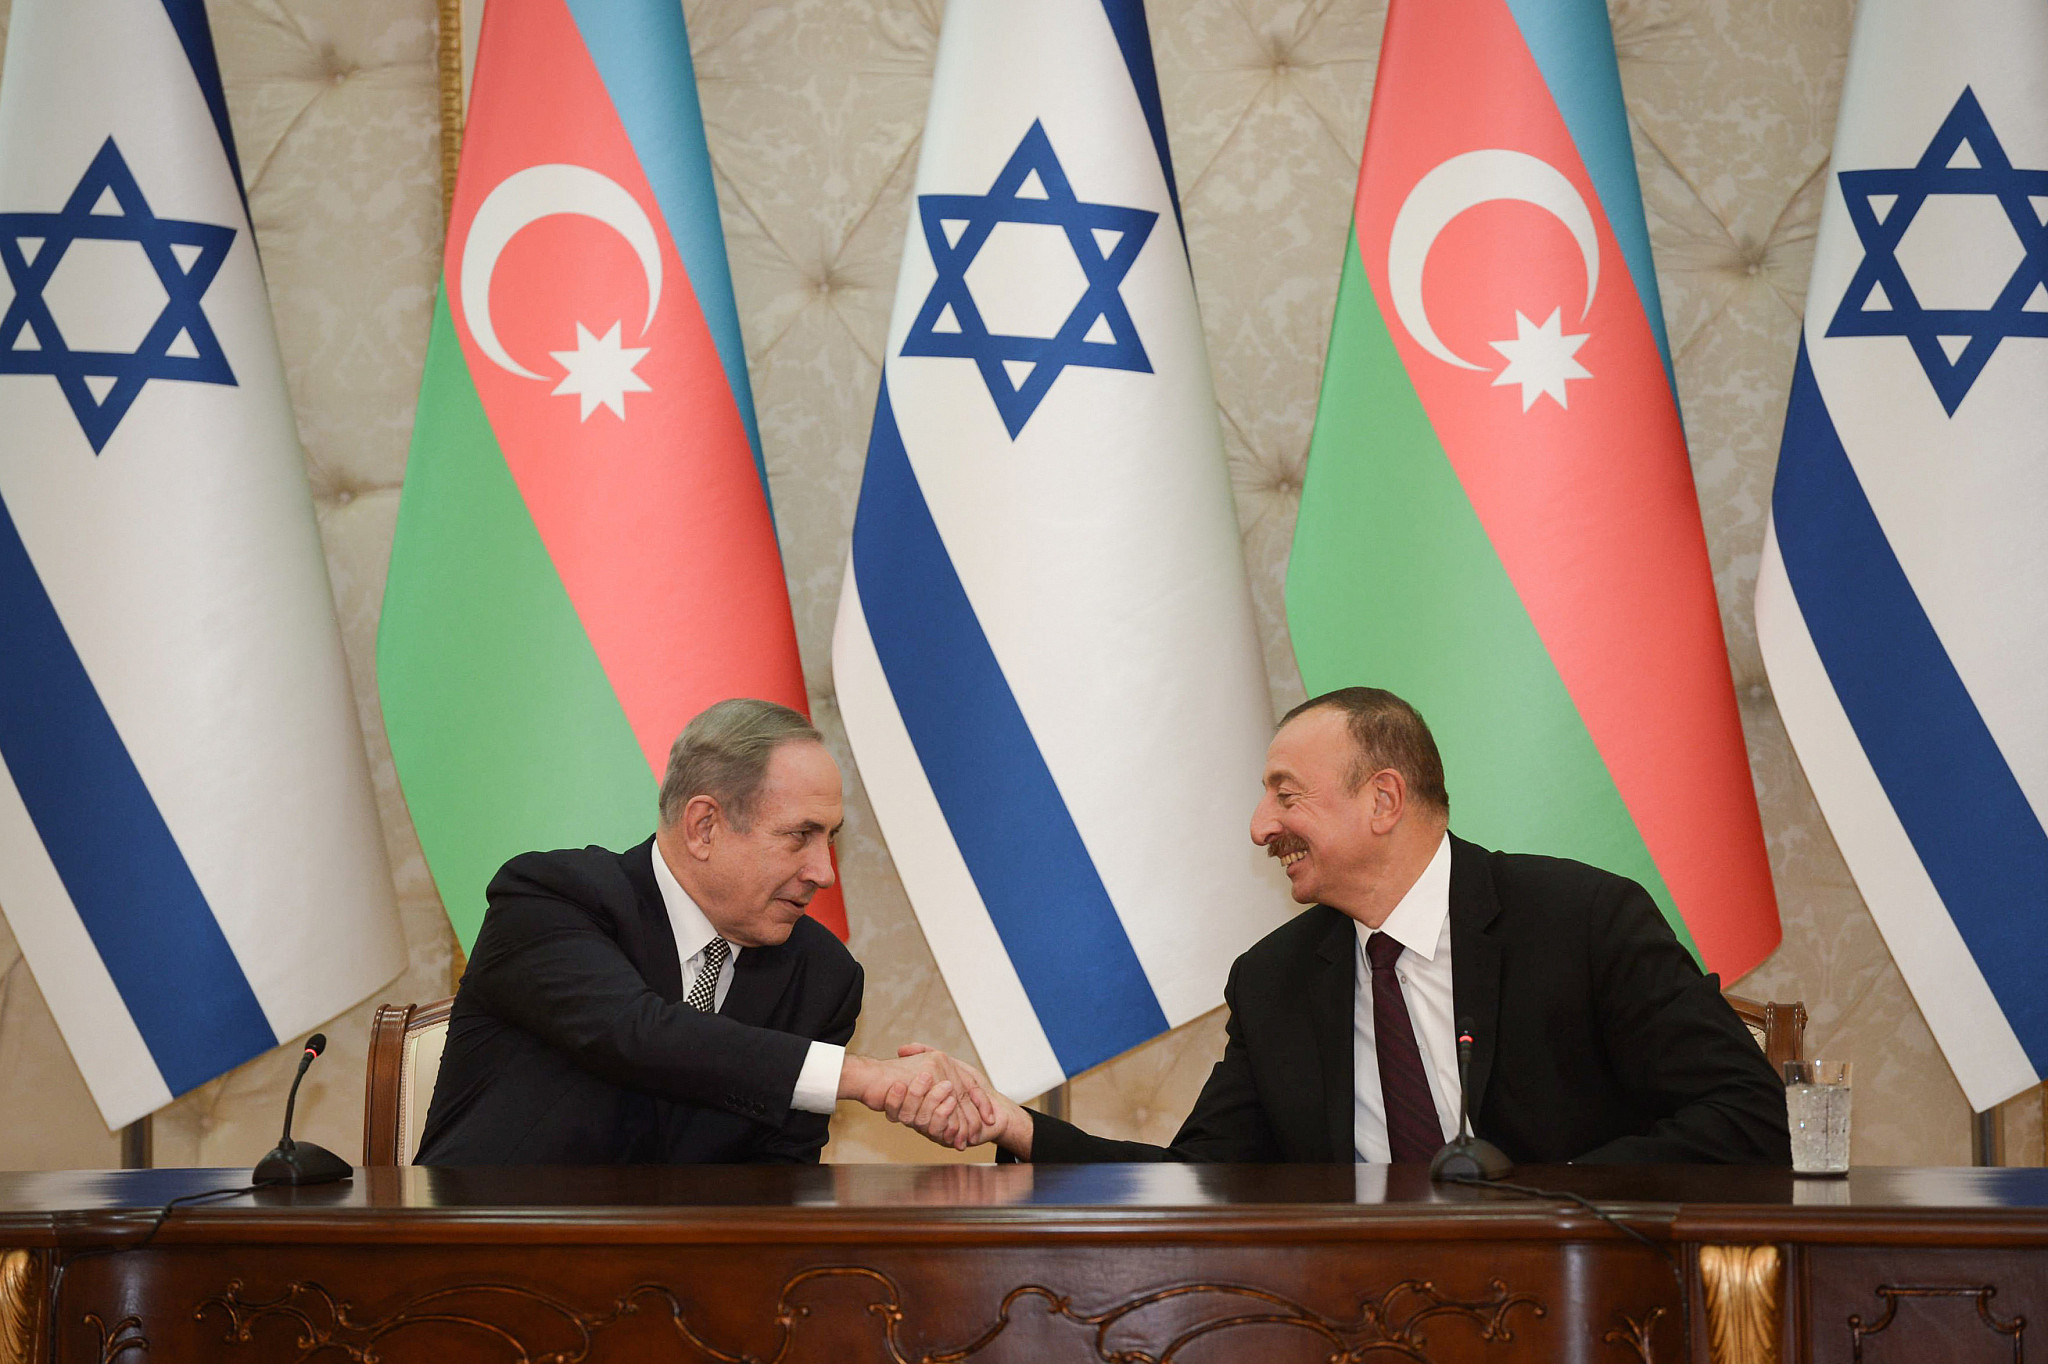 Prime Minister Benjamin Netanyahu seen shaking hands with Azerbaijani President Ilham Aliyev, during a visit to Azerbaijan, December 13, 2016. (Haim Zach/GPO)